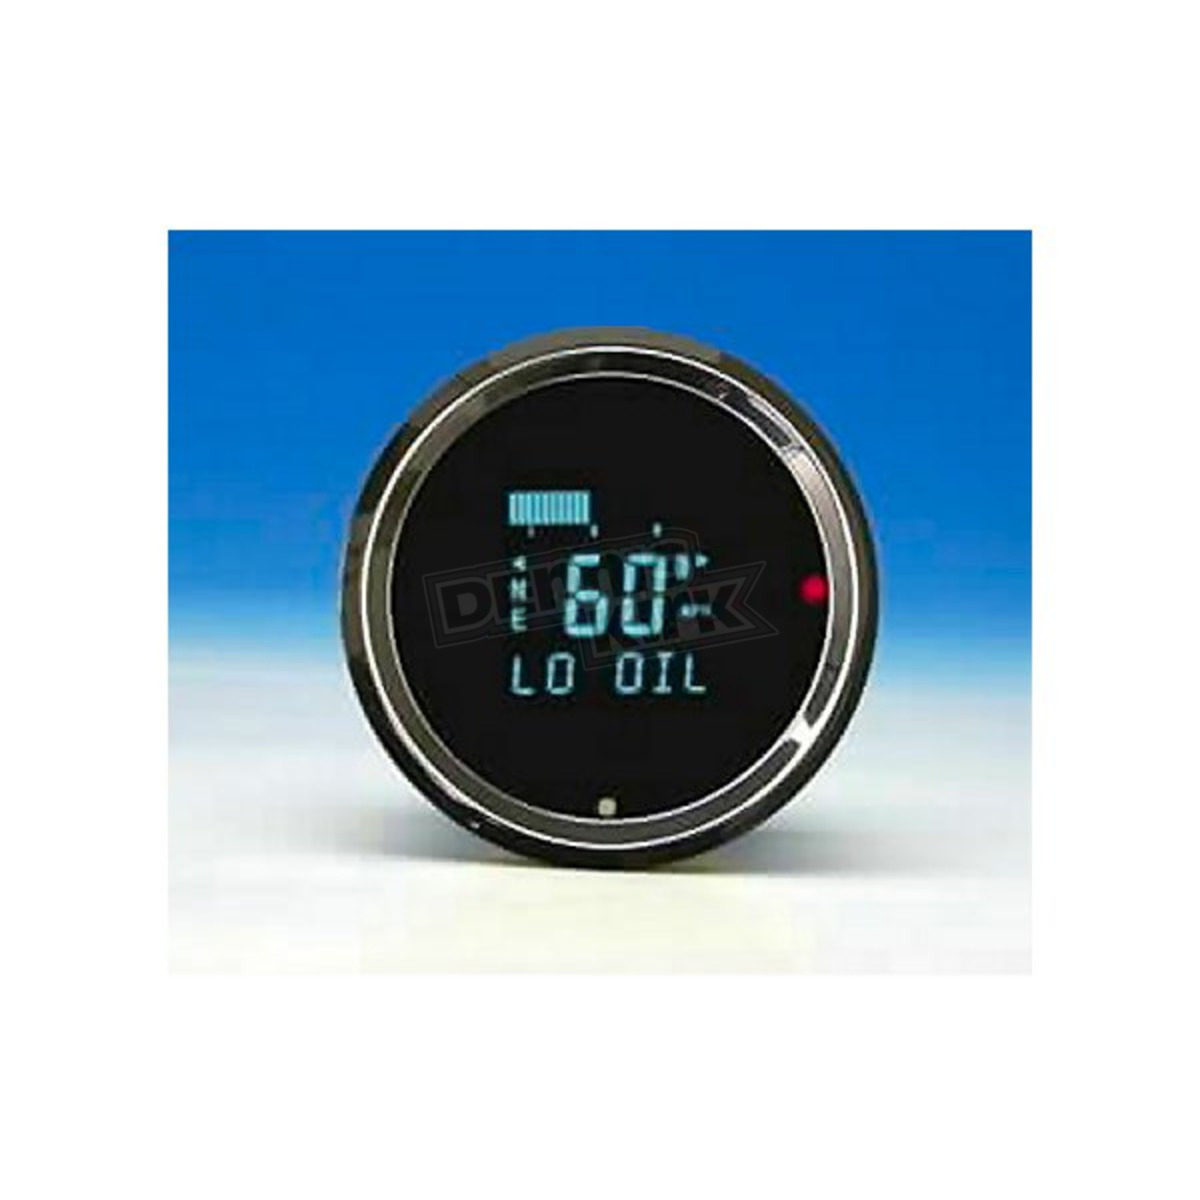 Electronic Speedometer Gauges : Dakota digital electronic speedometer gauge hly